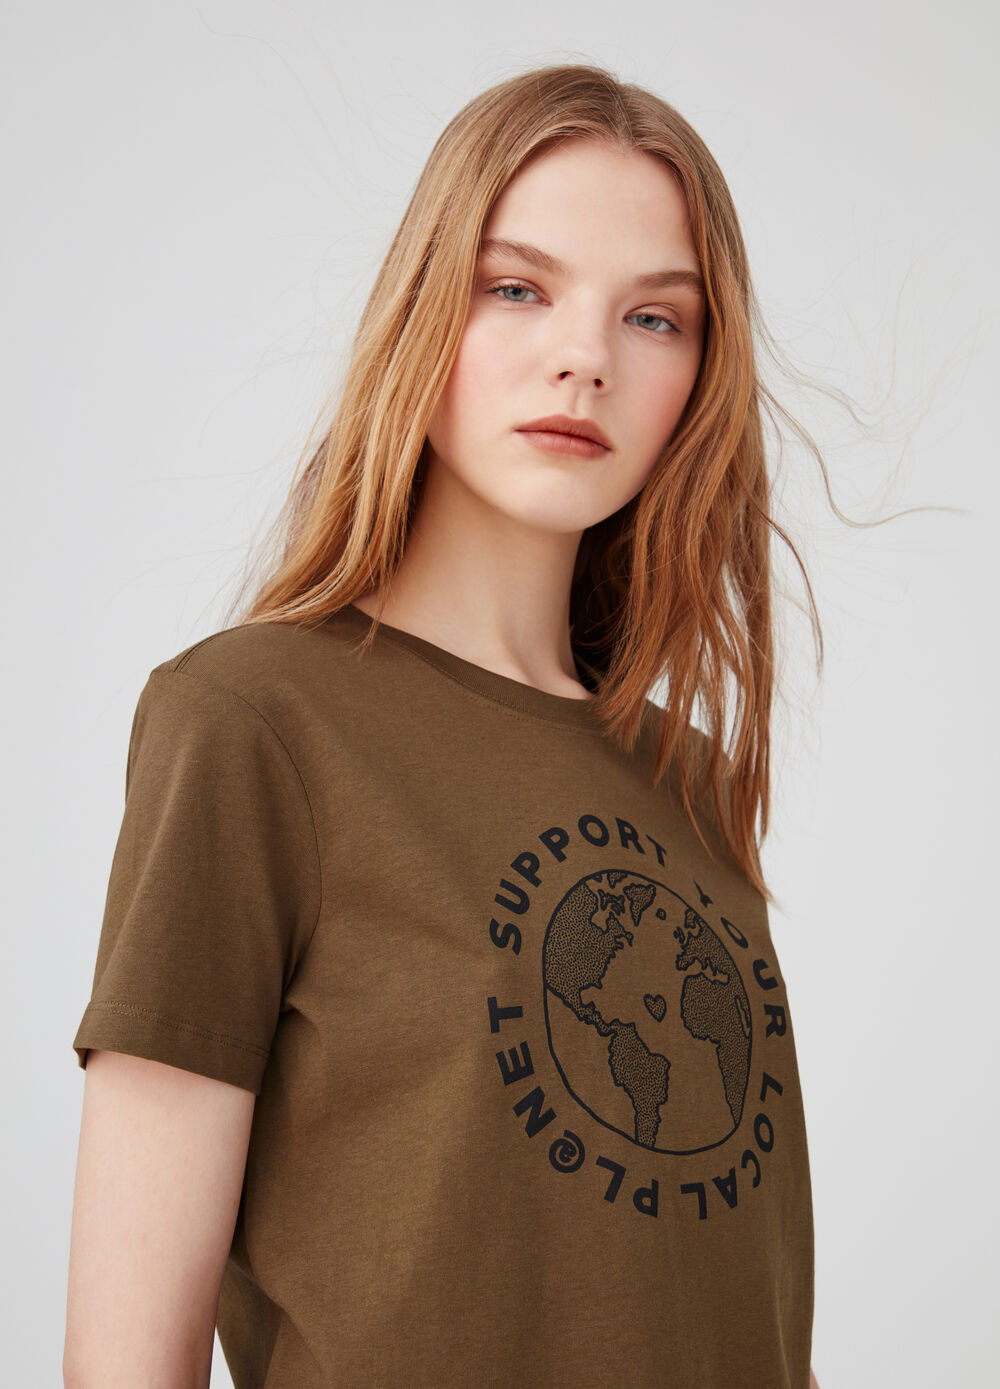 Camiseta biocotton estampado Earth Day